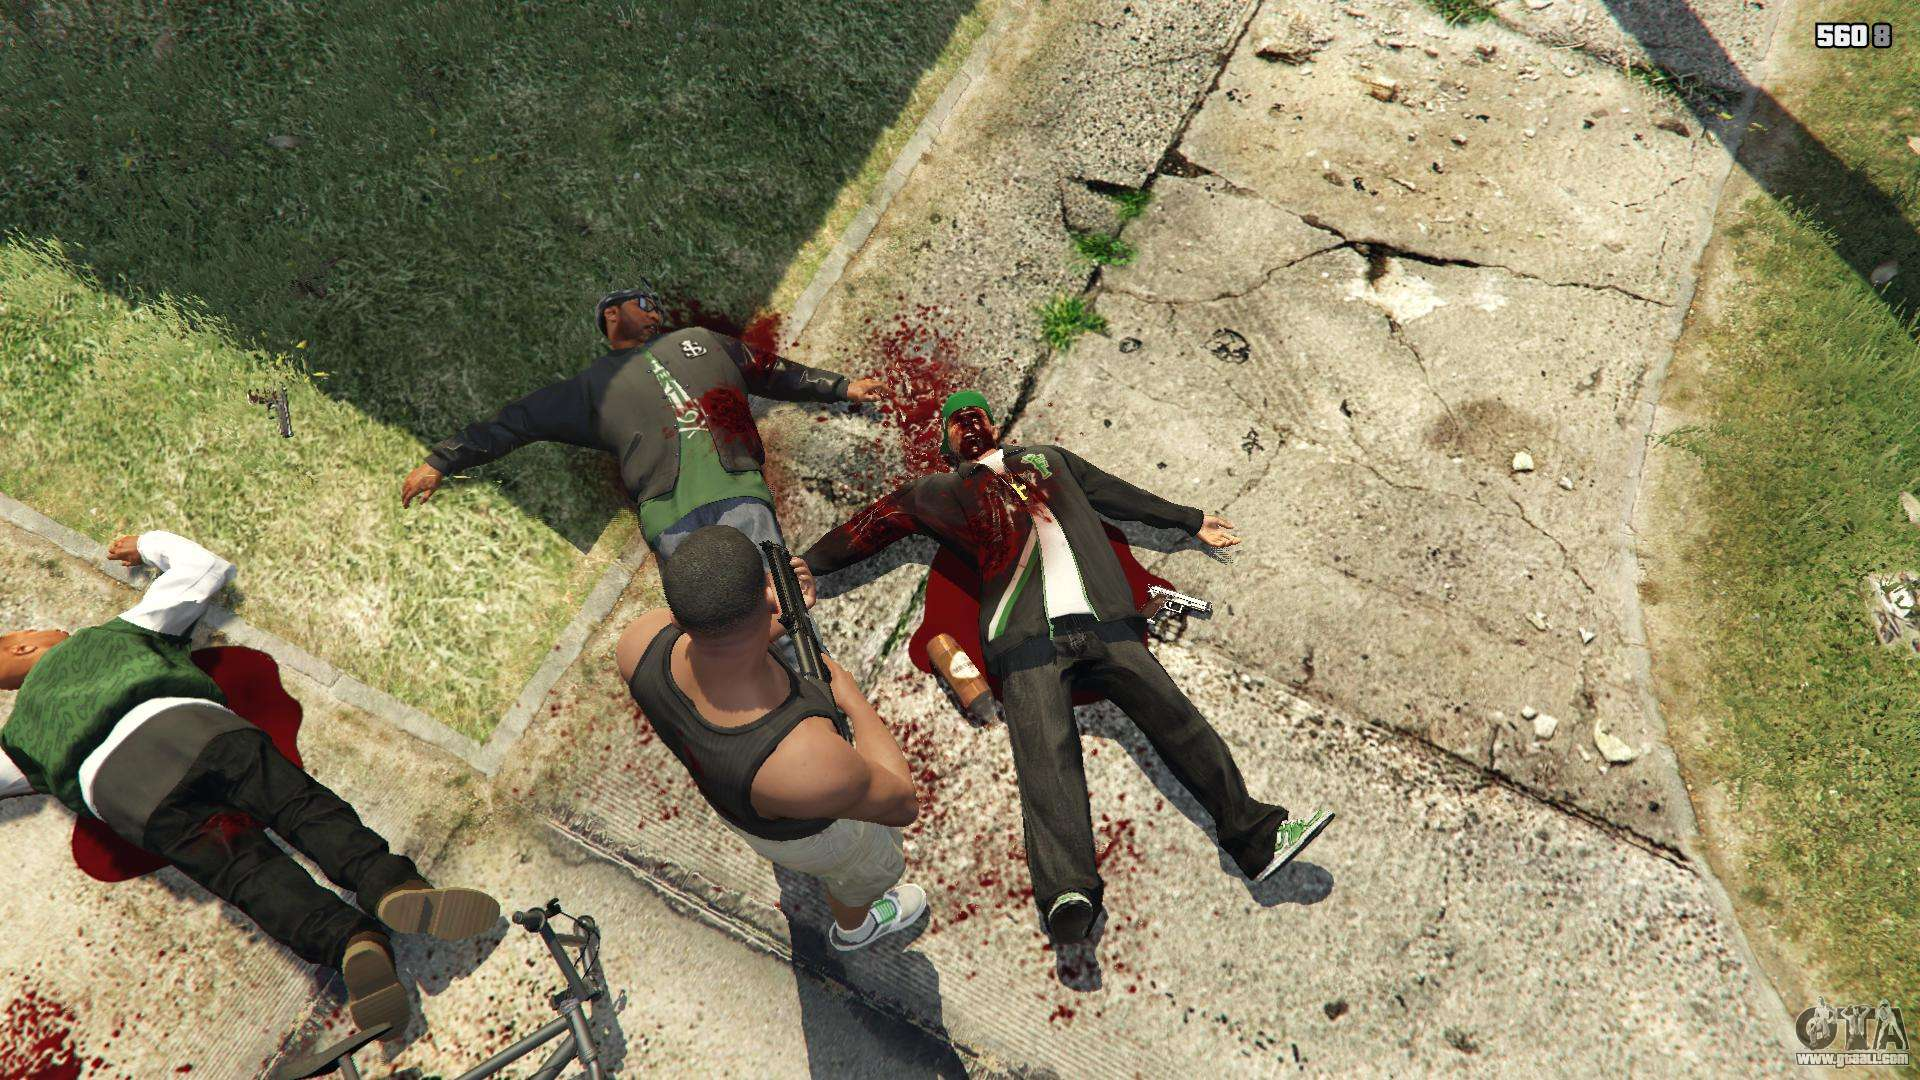 gta v blood and gore mod